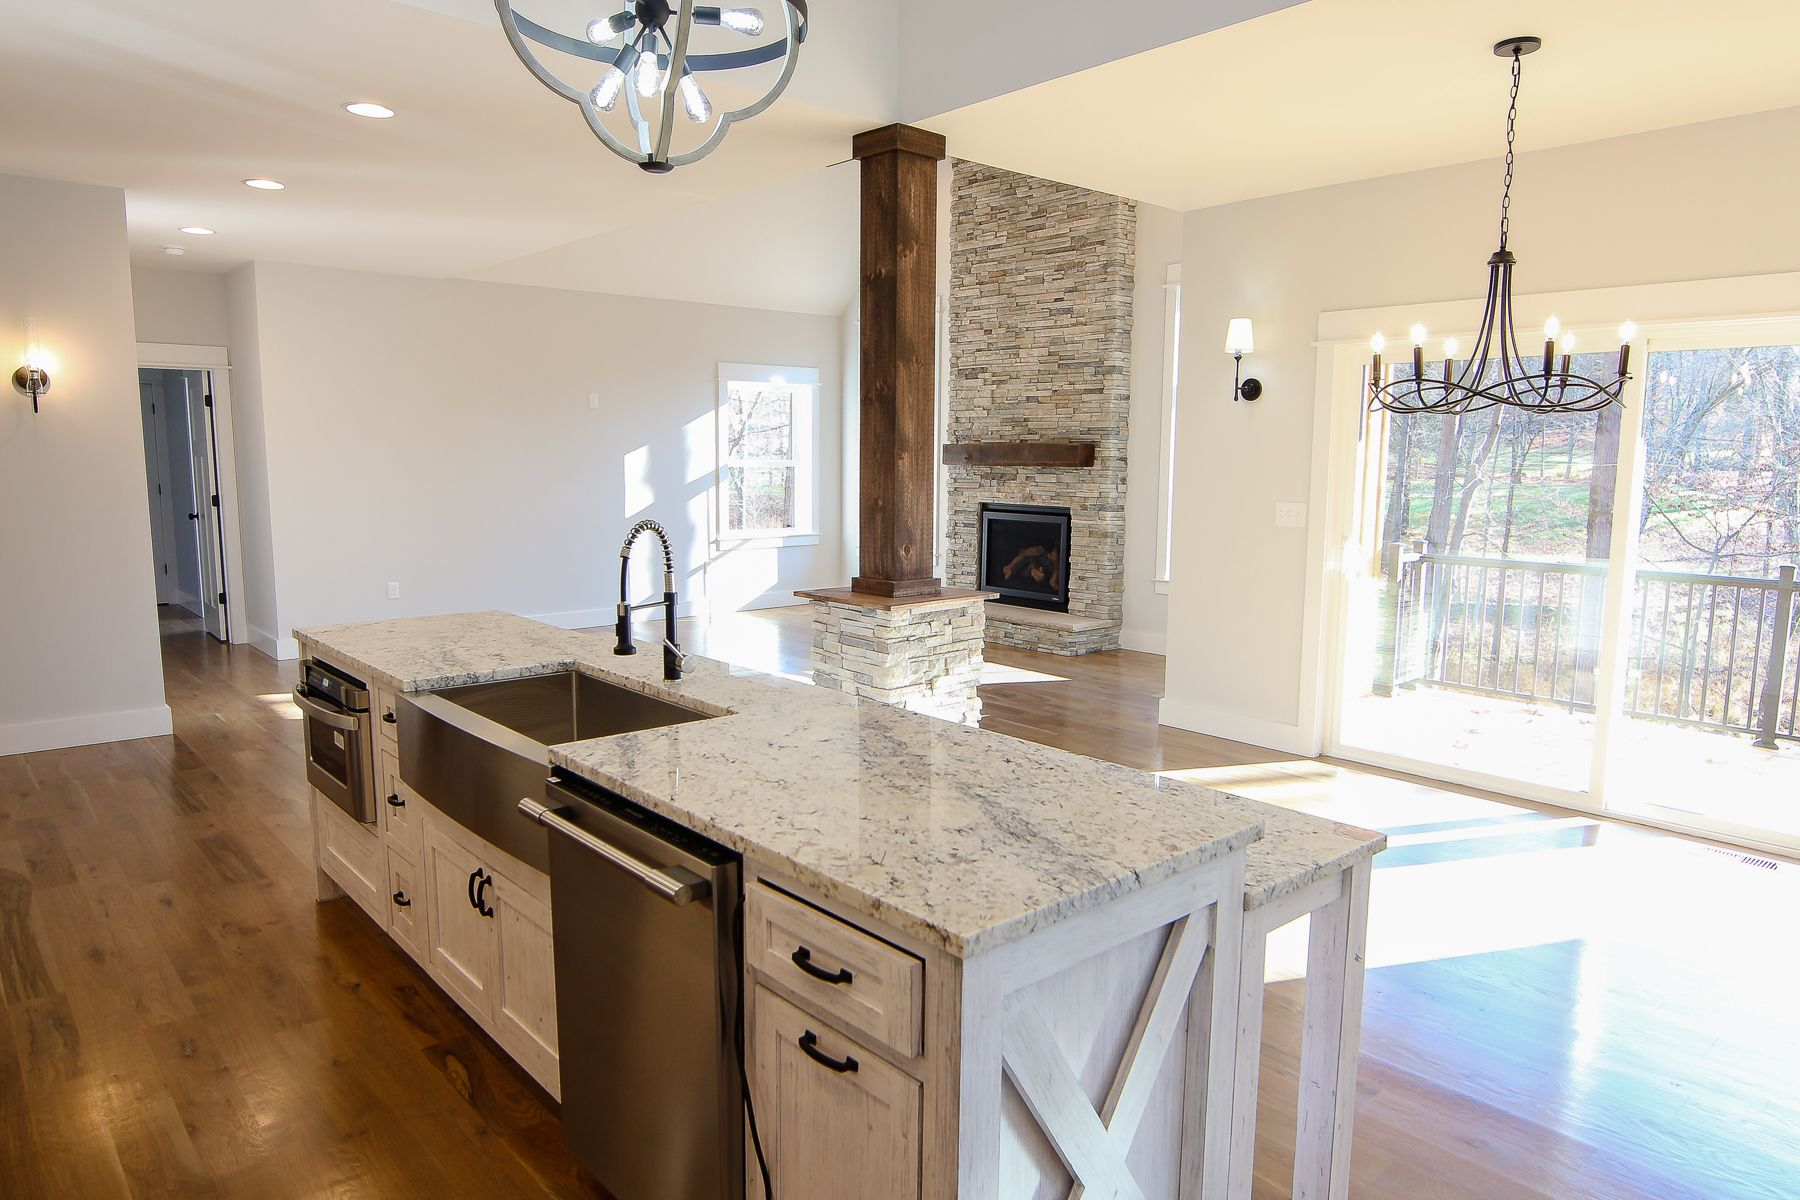 Kitchen featured in The Fairway By Realty Promotions, Inc. in Orange County, NY